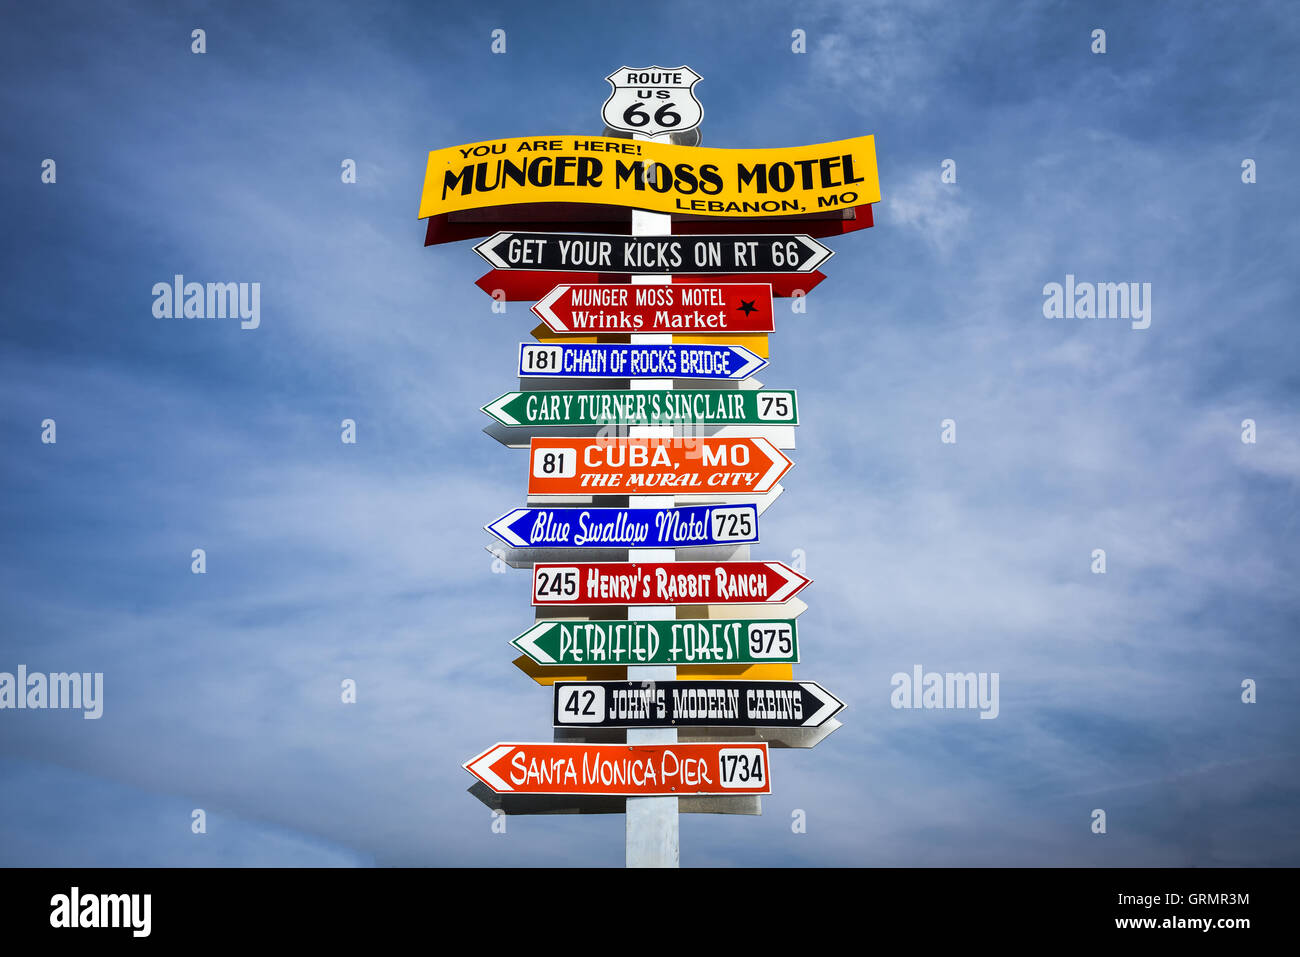 Route 66 Attractions Stock Photos & Route 66 Attractions Stock ...